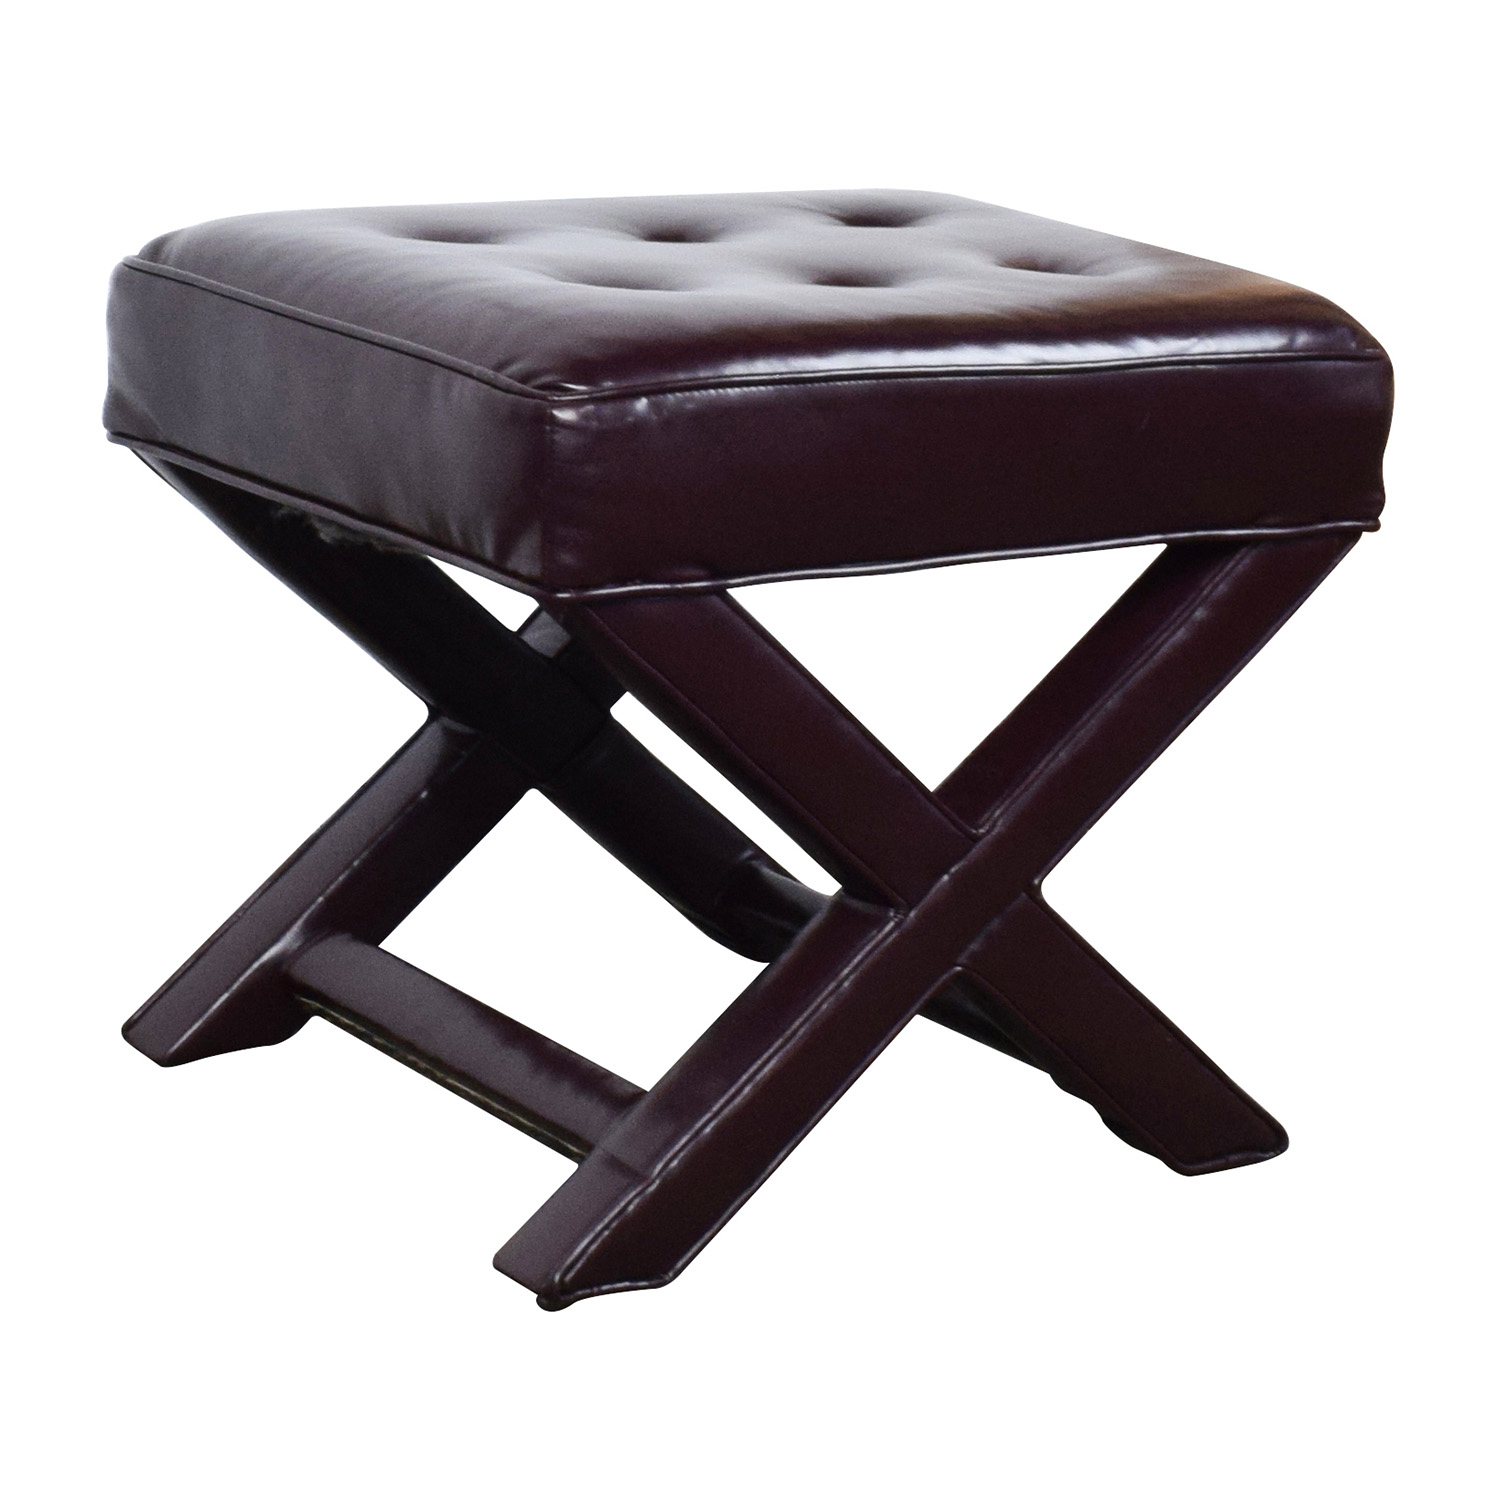 90 off burgundy tufted leather ottoman chairs for Chair ottoman